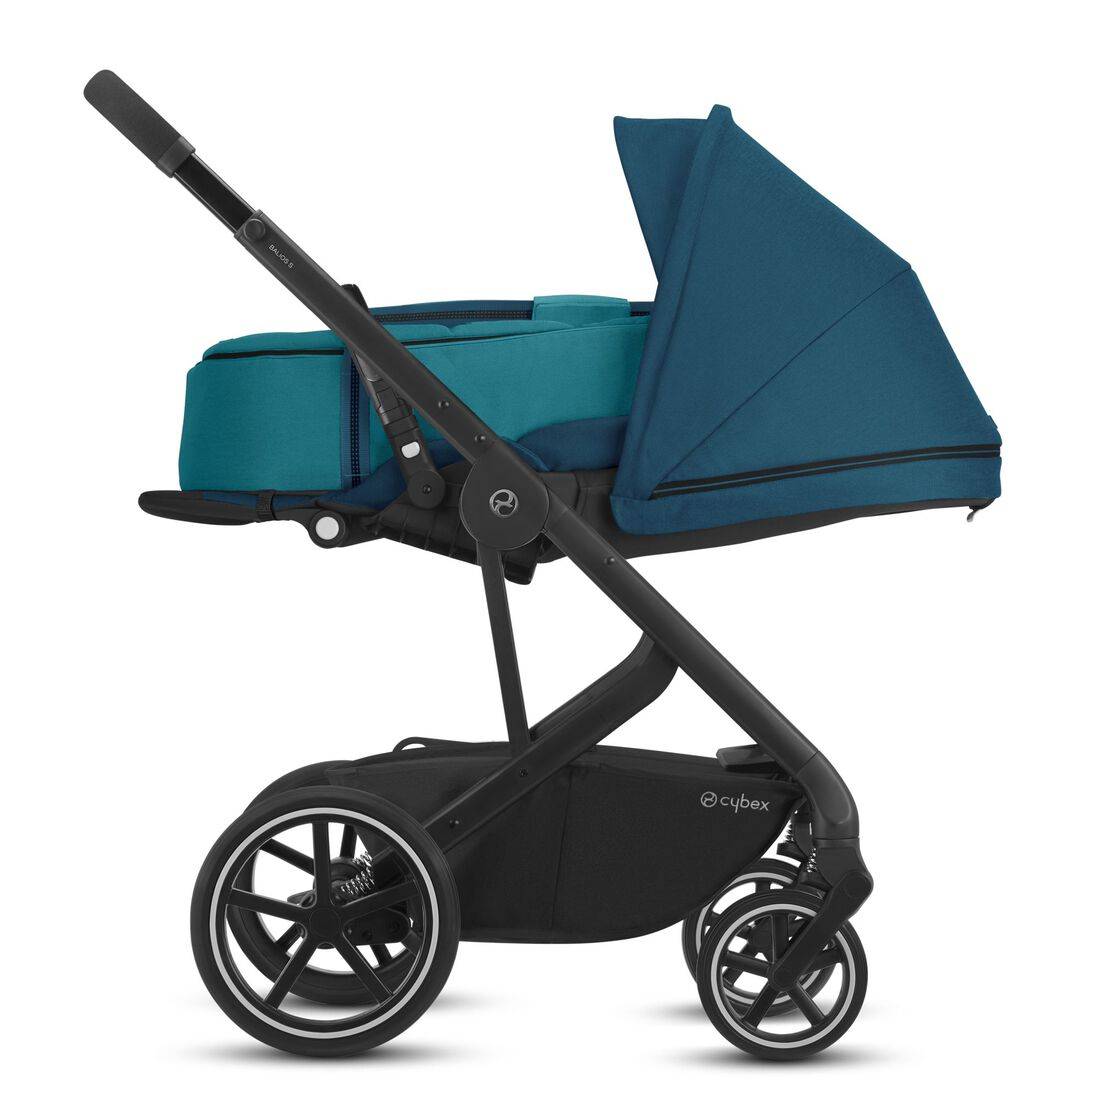 CYBEX Balios S Lux - River Blue (Black Frame) in River Blue (Black Frame) large image number 4